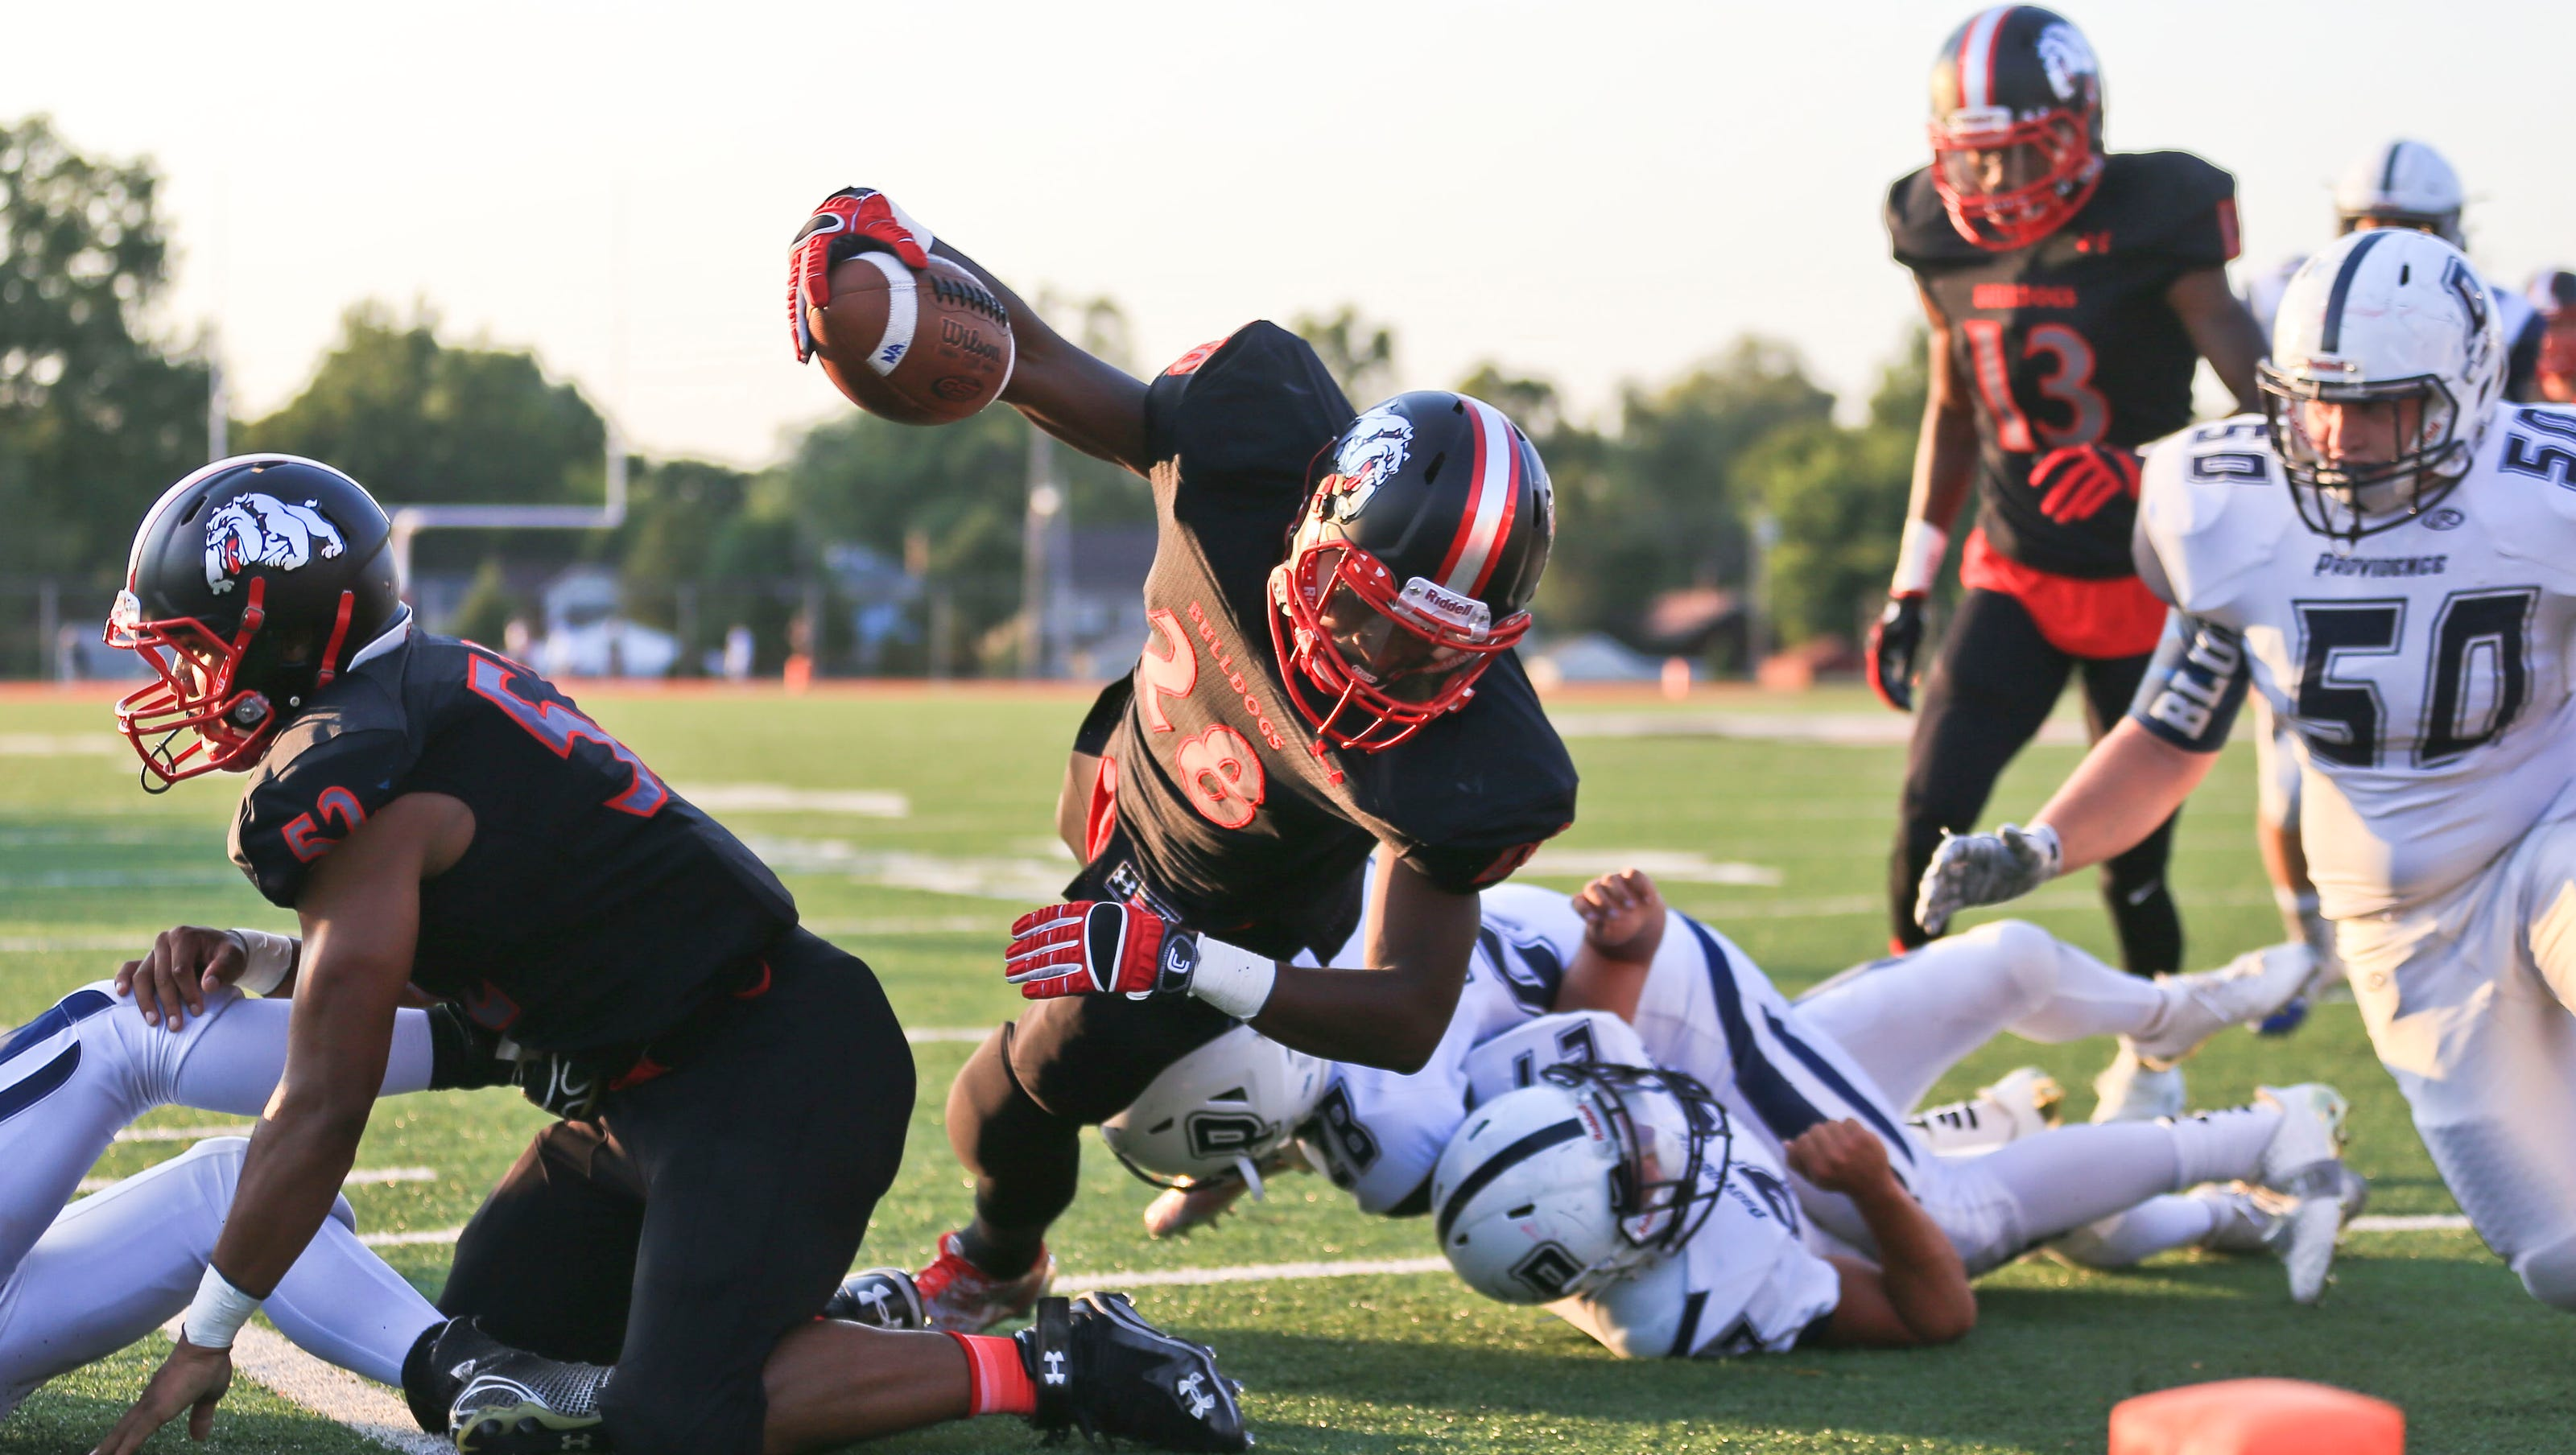 Indiana High School Football Scores For Week 1